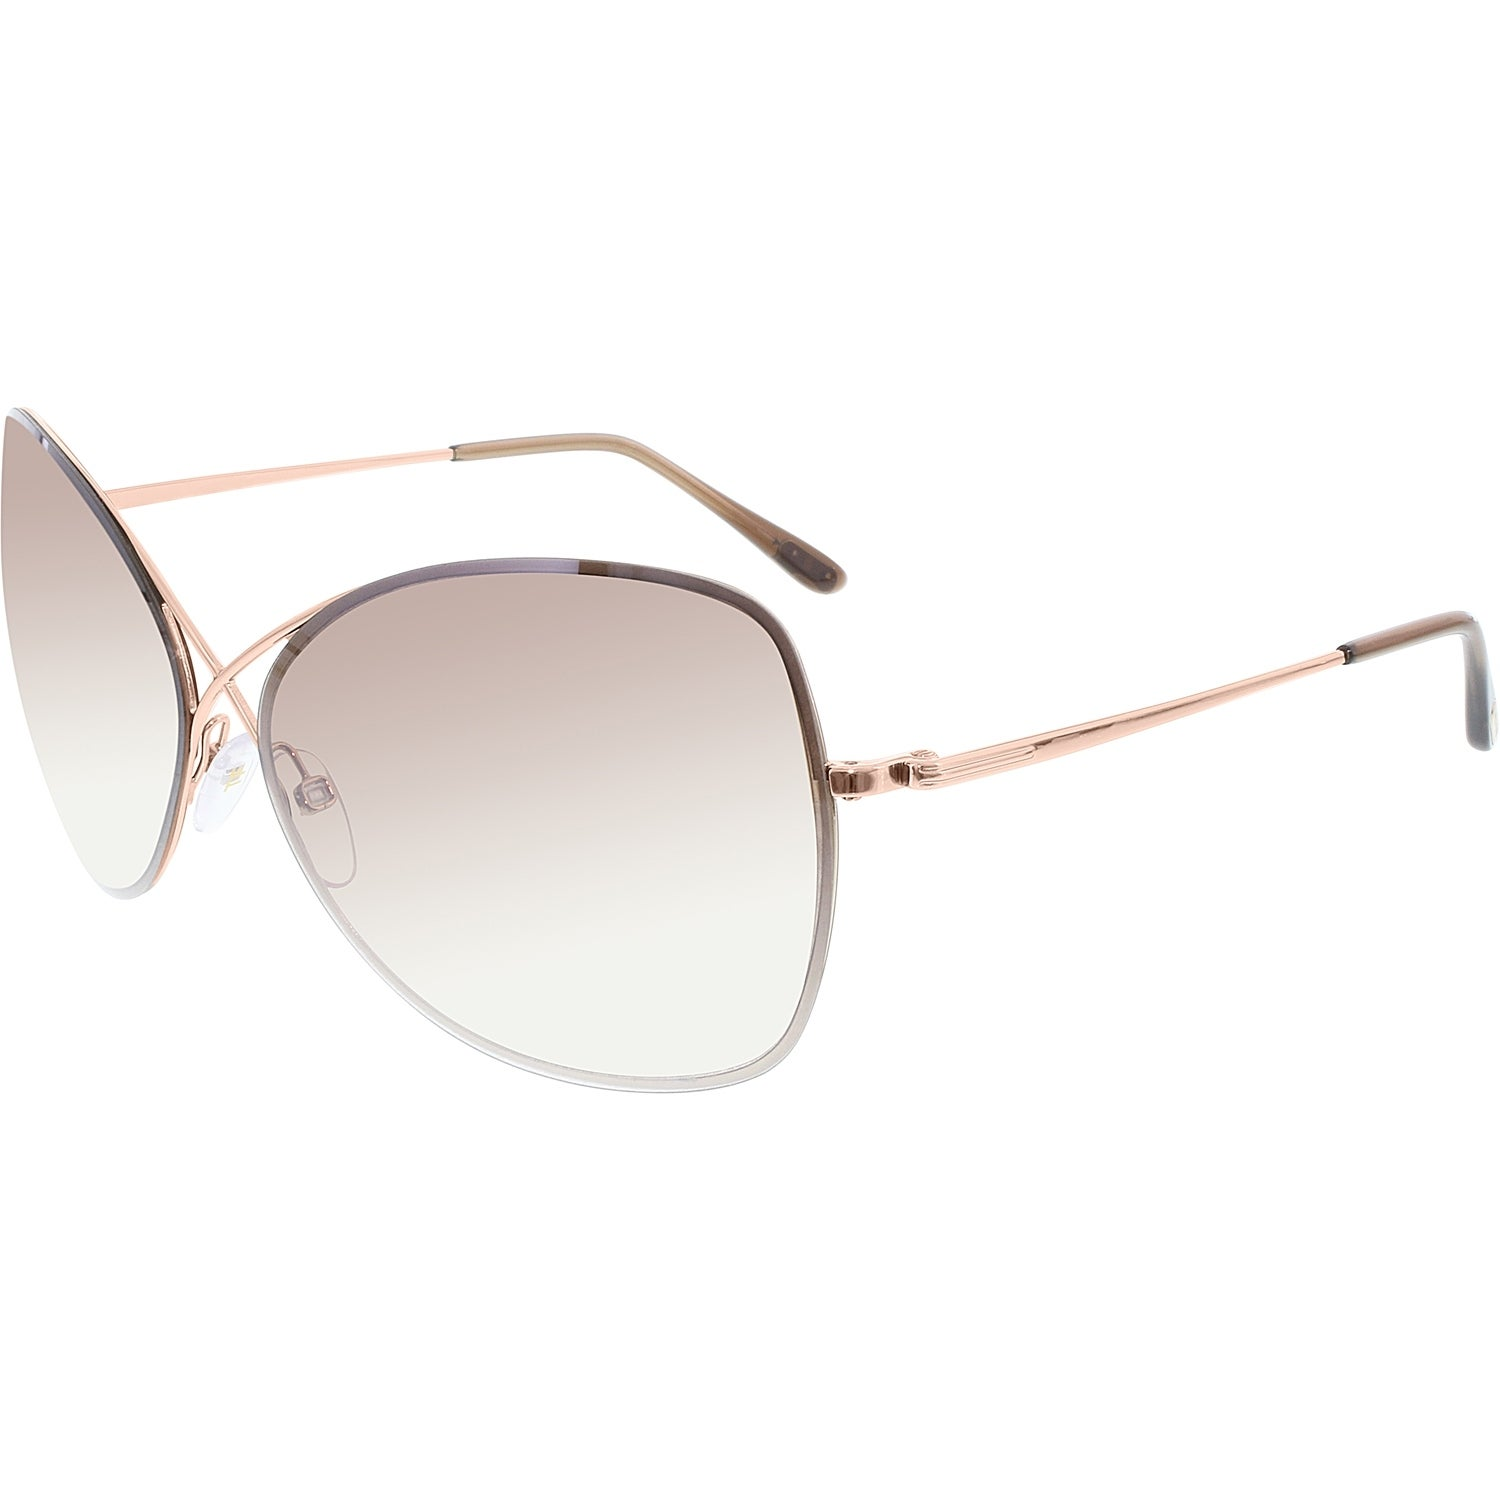 d2b9464579 Tom Ford Women s Gradient Colette FT0250-28F-63 Gold Butterfly Sunglasses